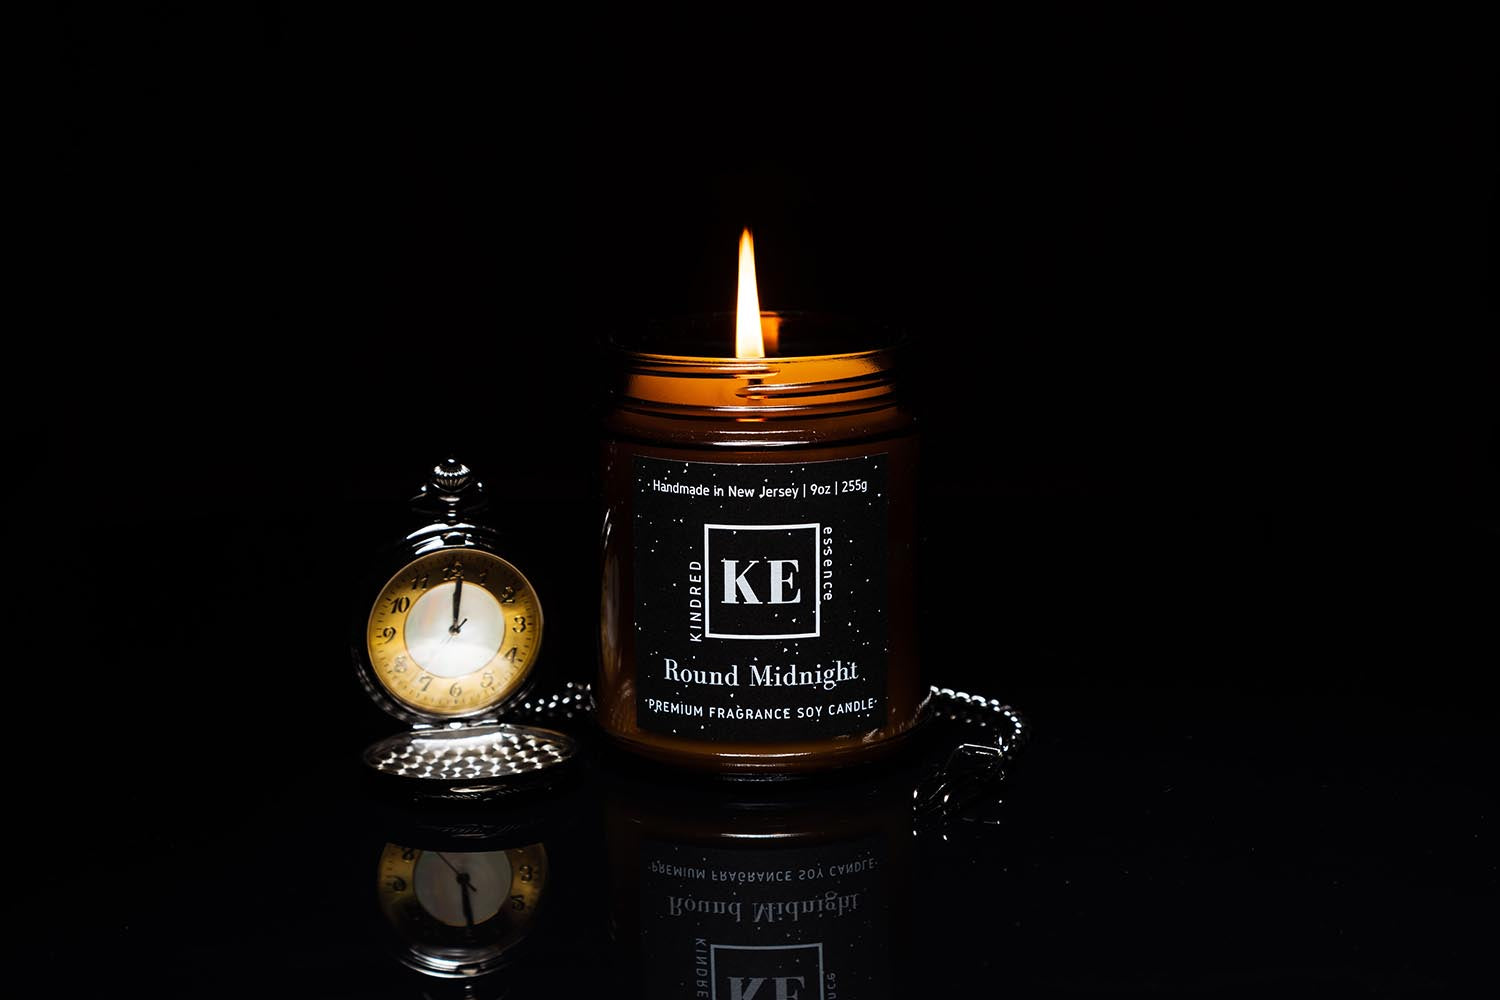 Round Midnight Soy Candle for Men